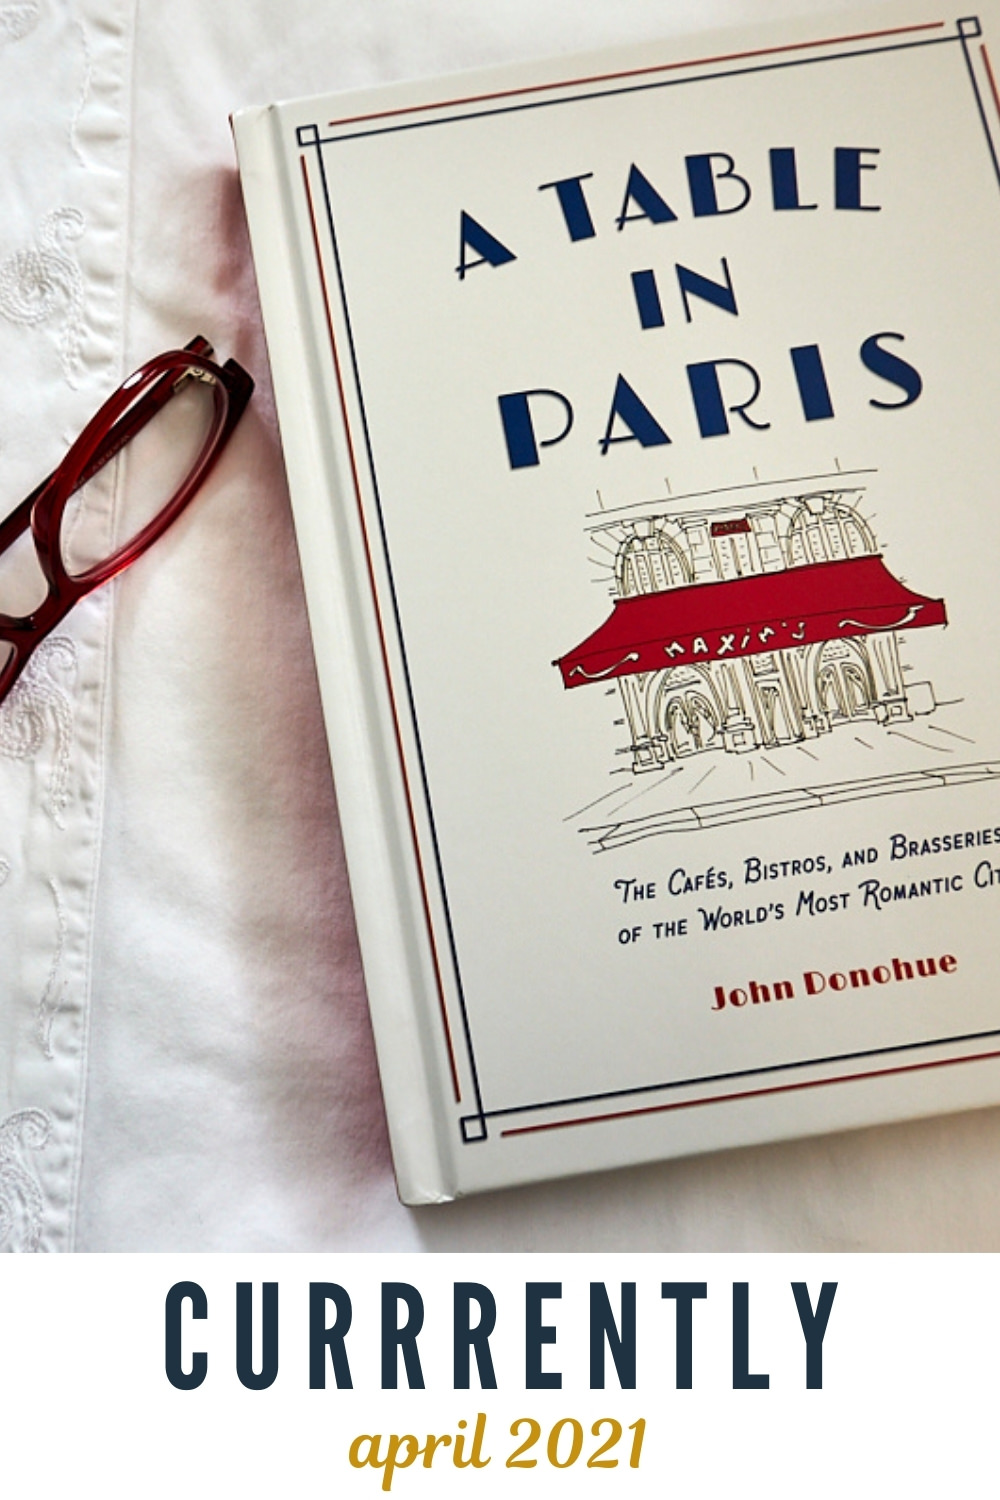 A Table in Paris book on bed with glasses